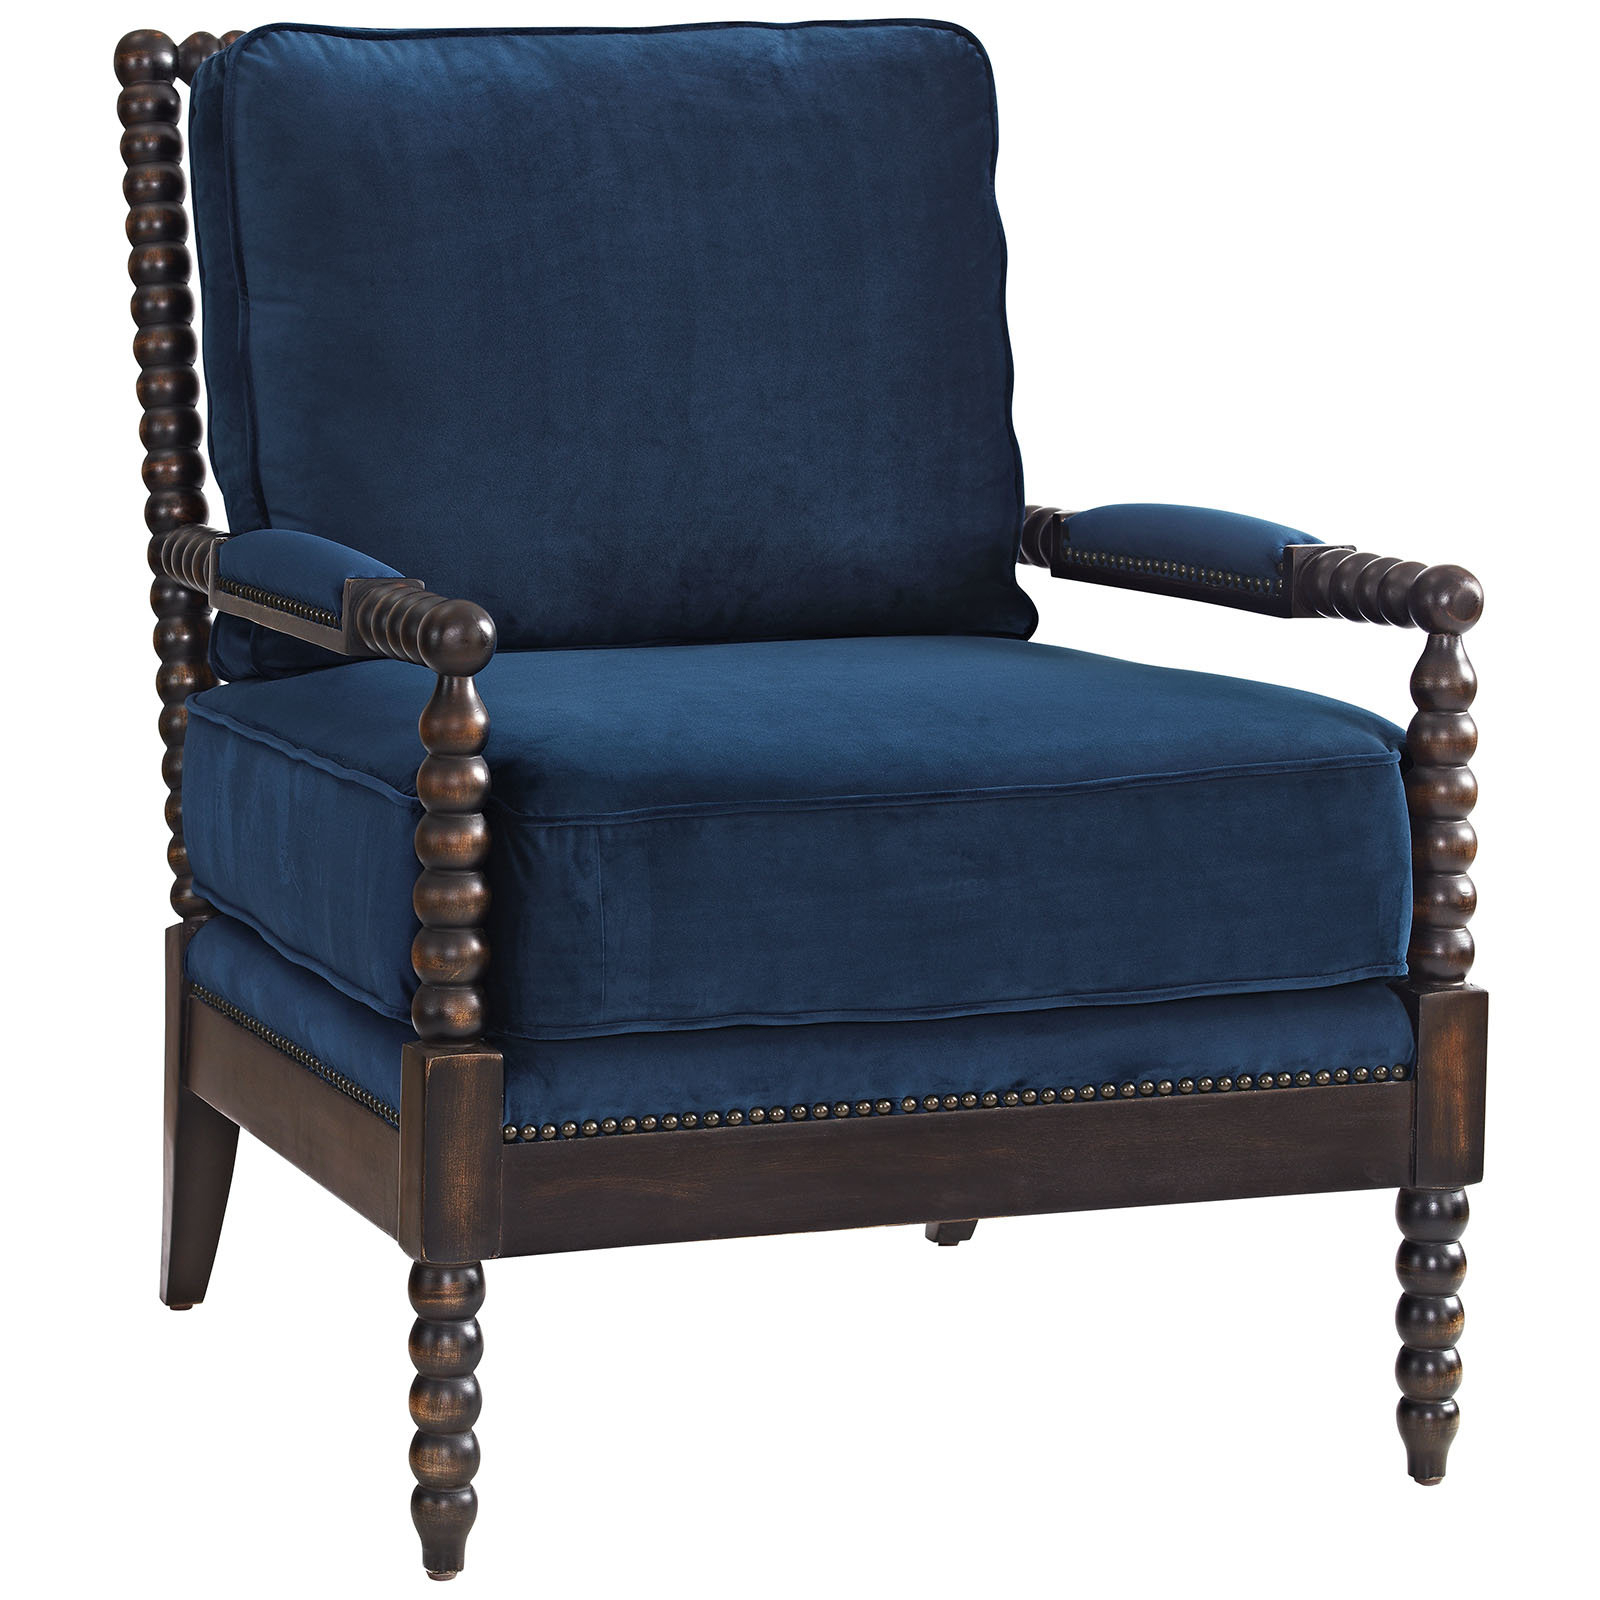 Darby Home Co Areyanna Armchair | Wayfair For Katrina Blue Swivel Glider Chairs (View 8 of 25)